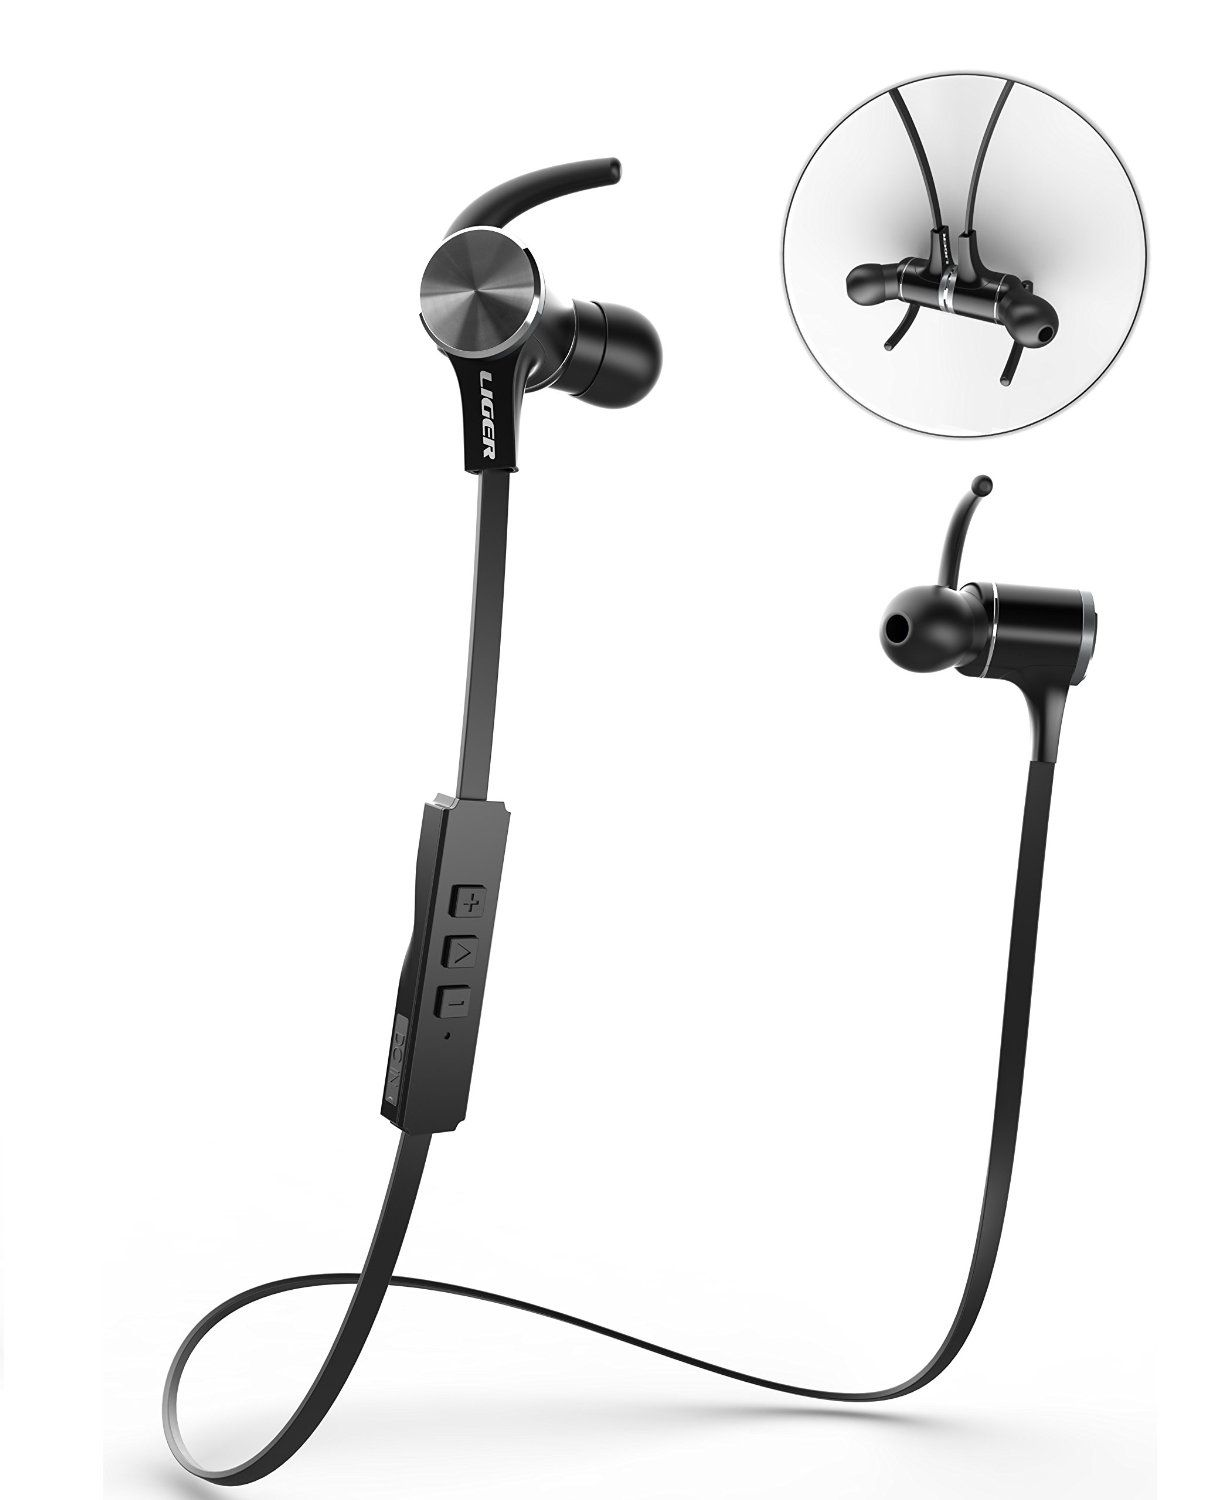 Robot Check Bluetooth earbuds, Sports headphones, Earbuds